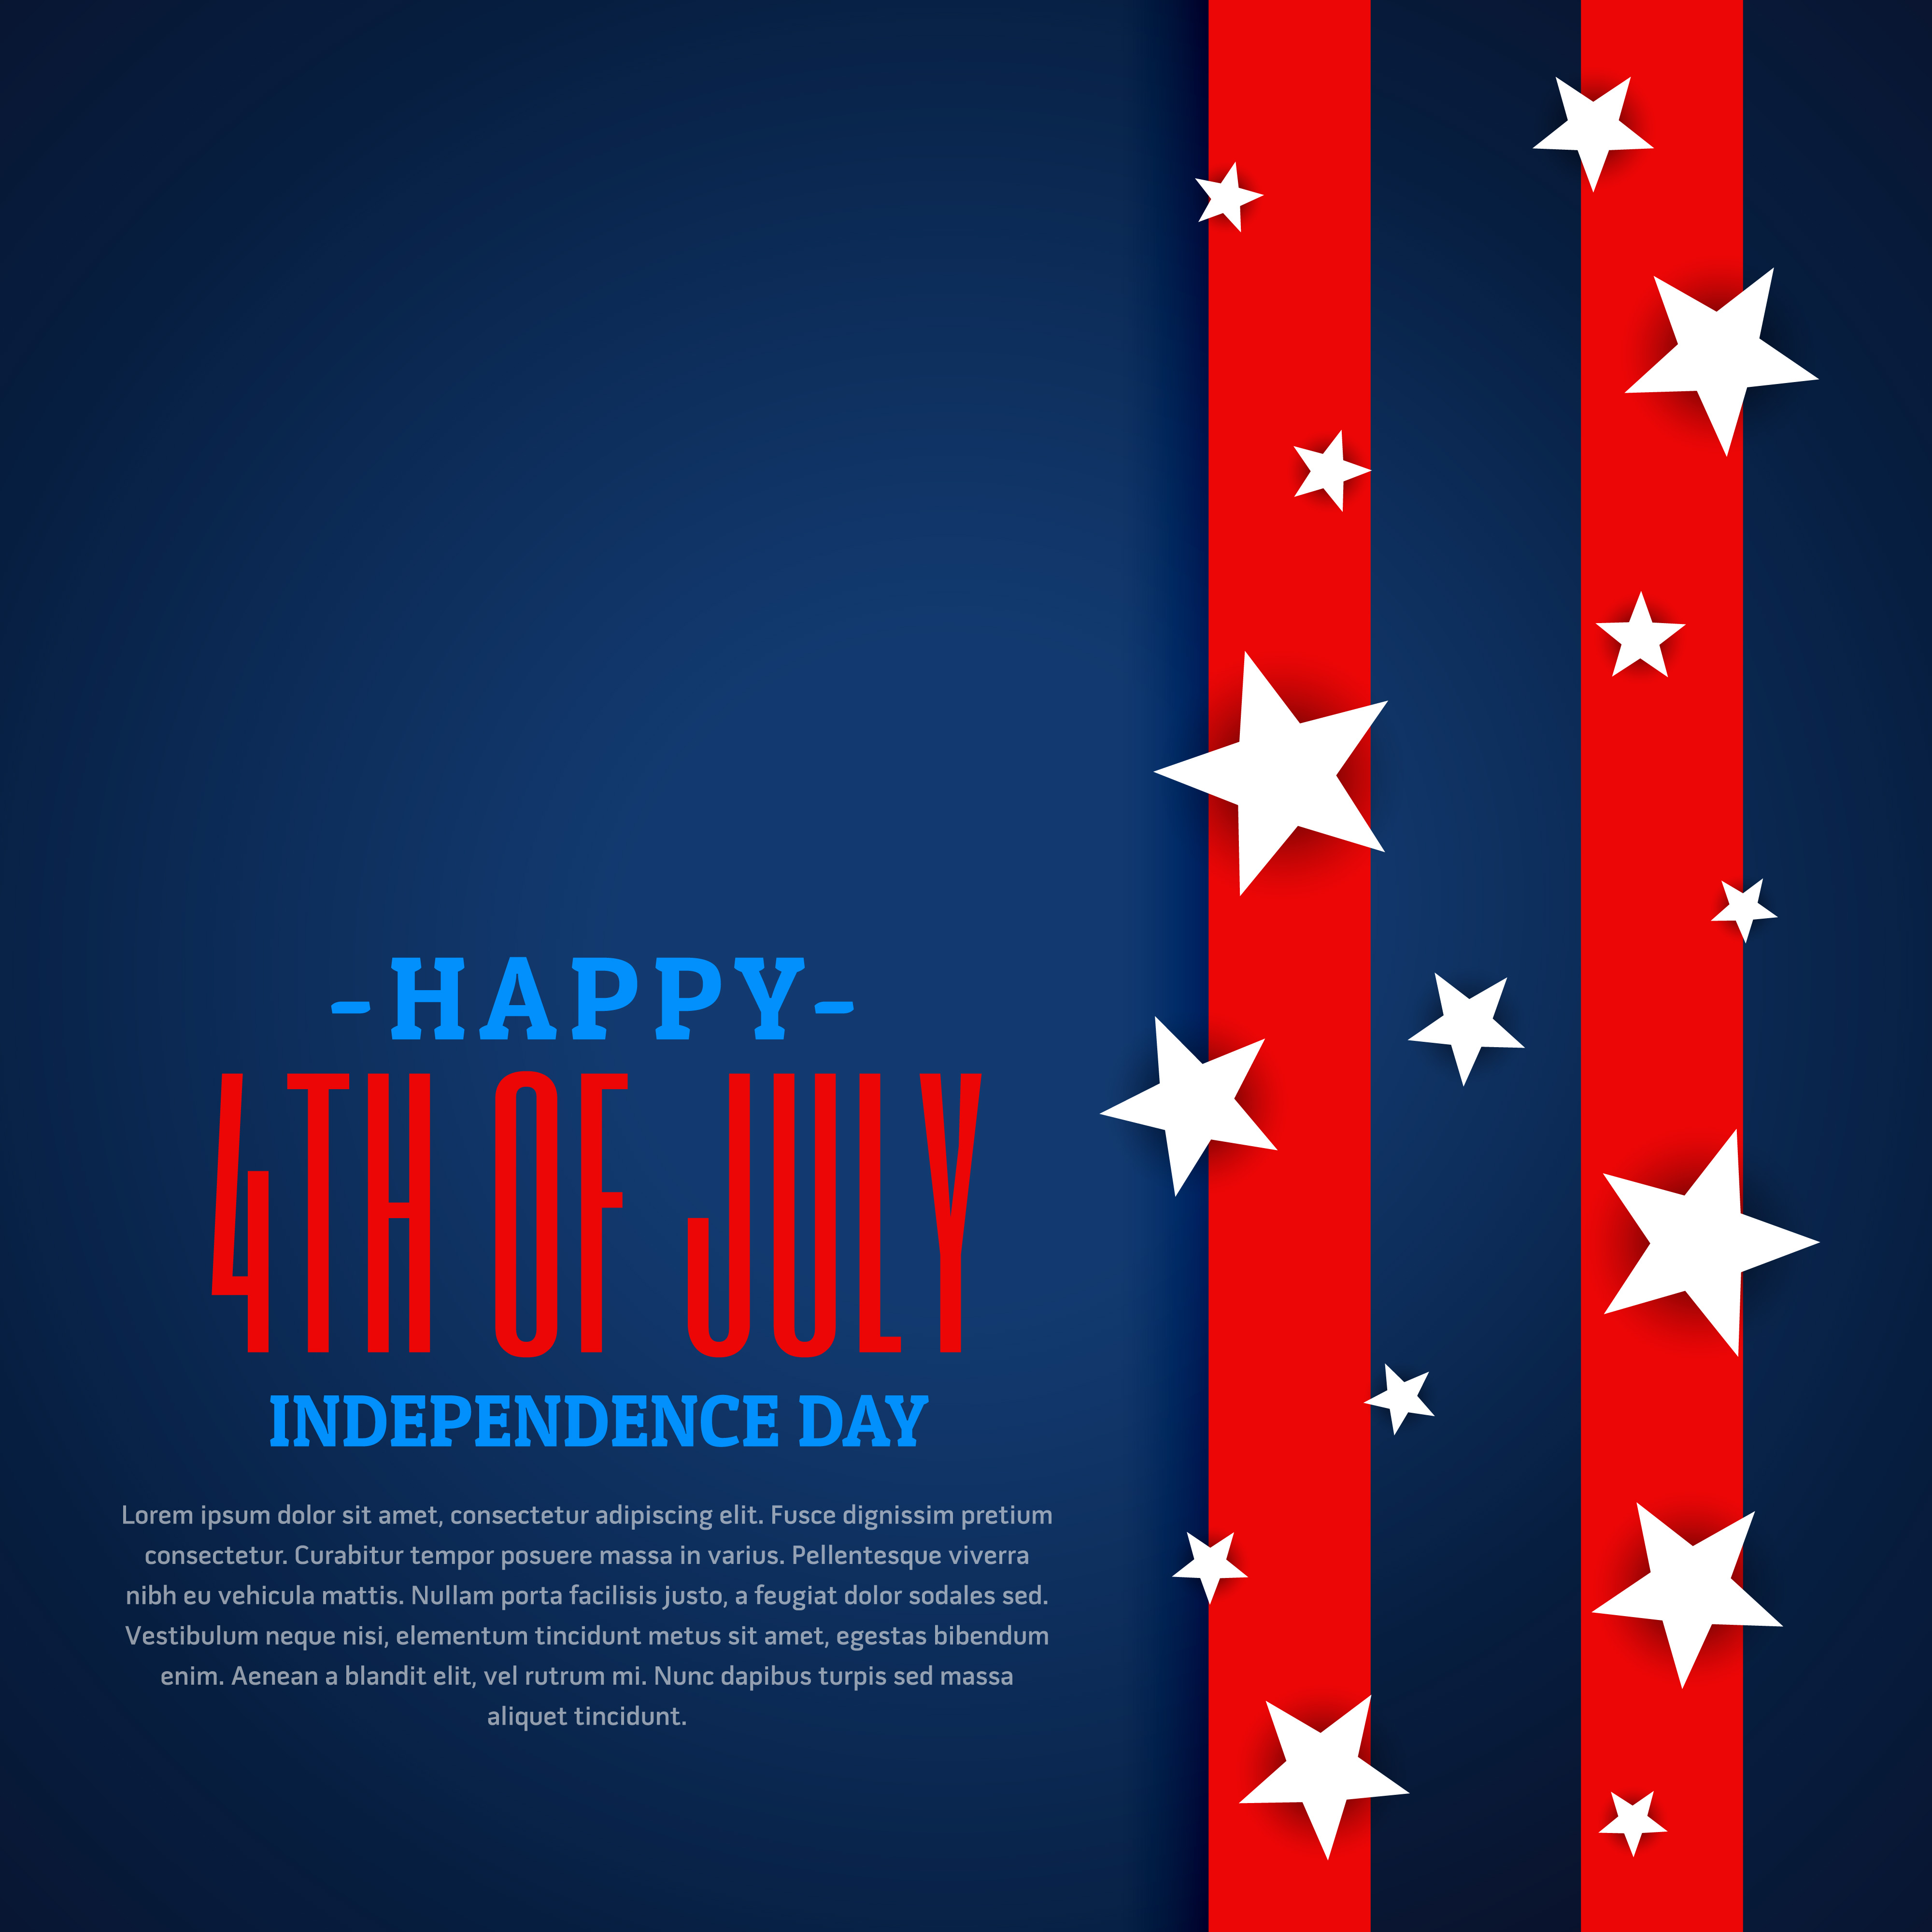 Independence Day: American Independence Day Background